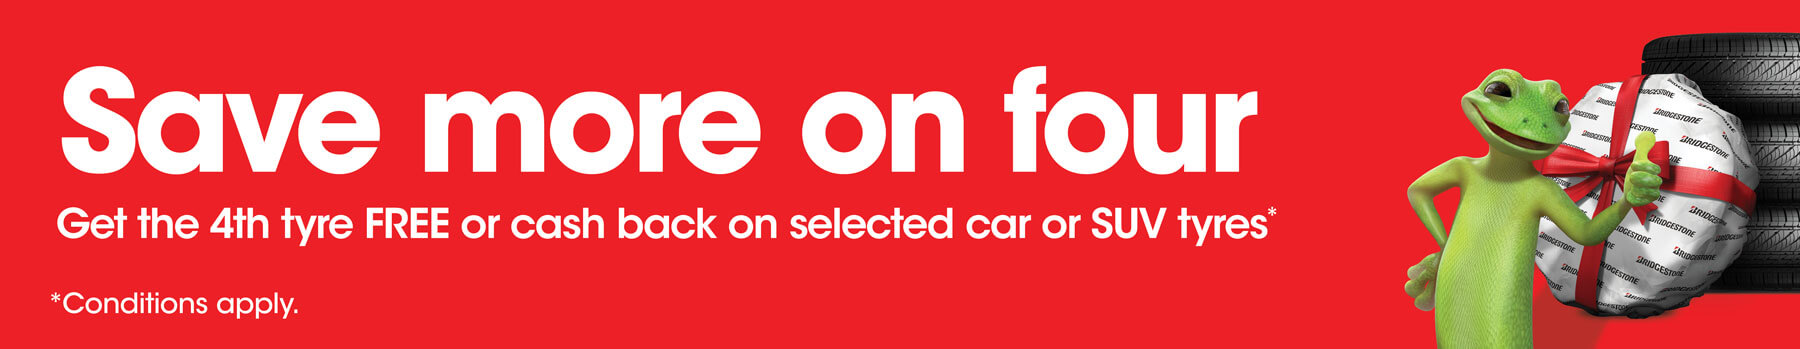 Save more on four - Get the 4th tyre FREE or cash back on selected car or SUV tyres